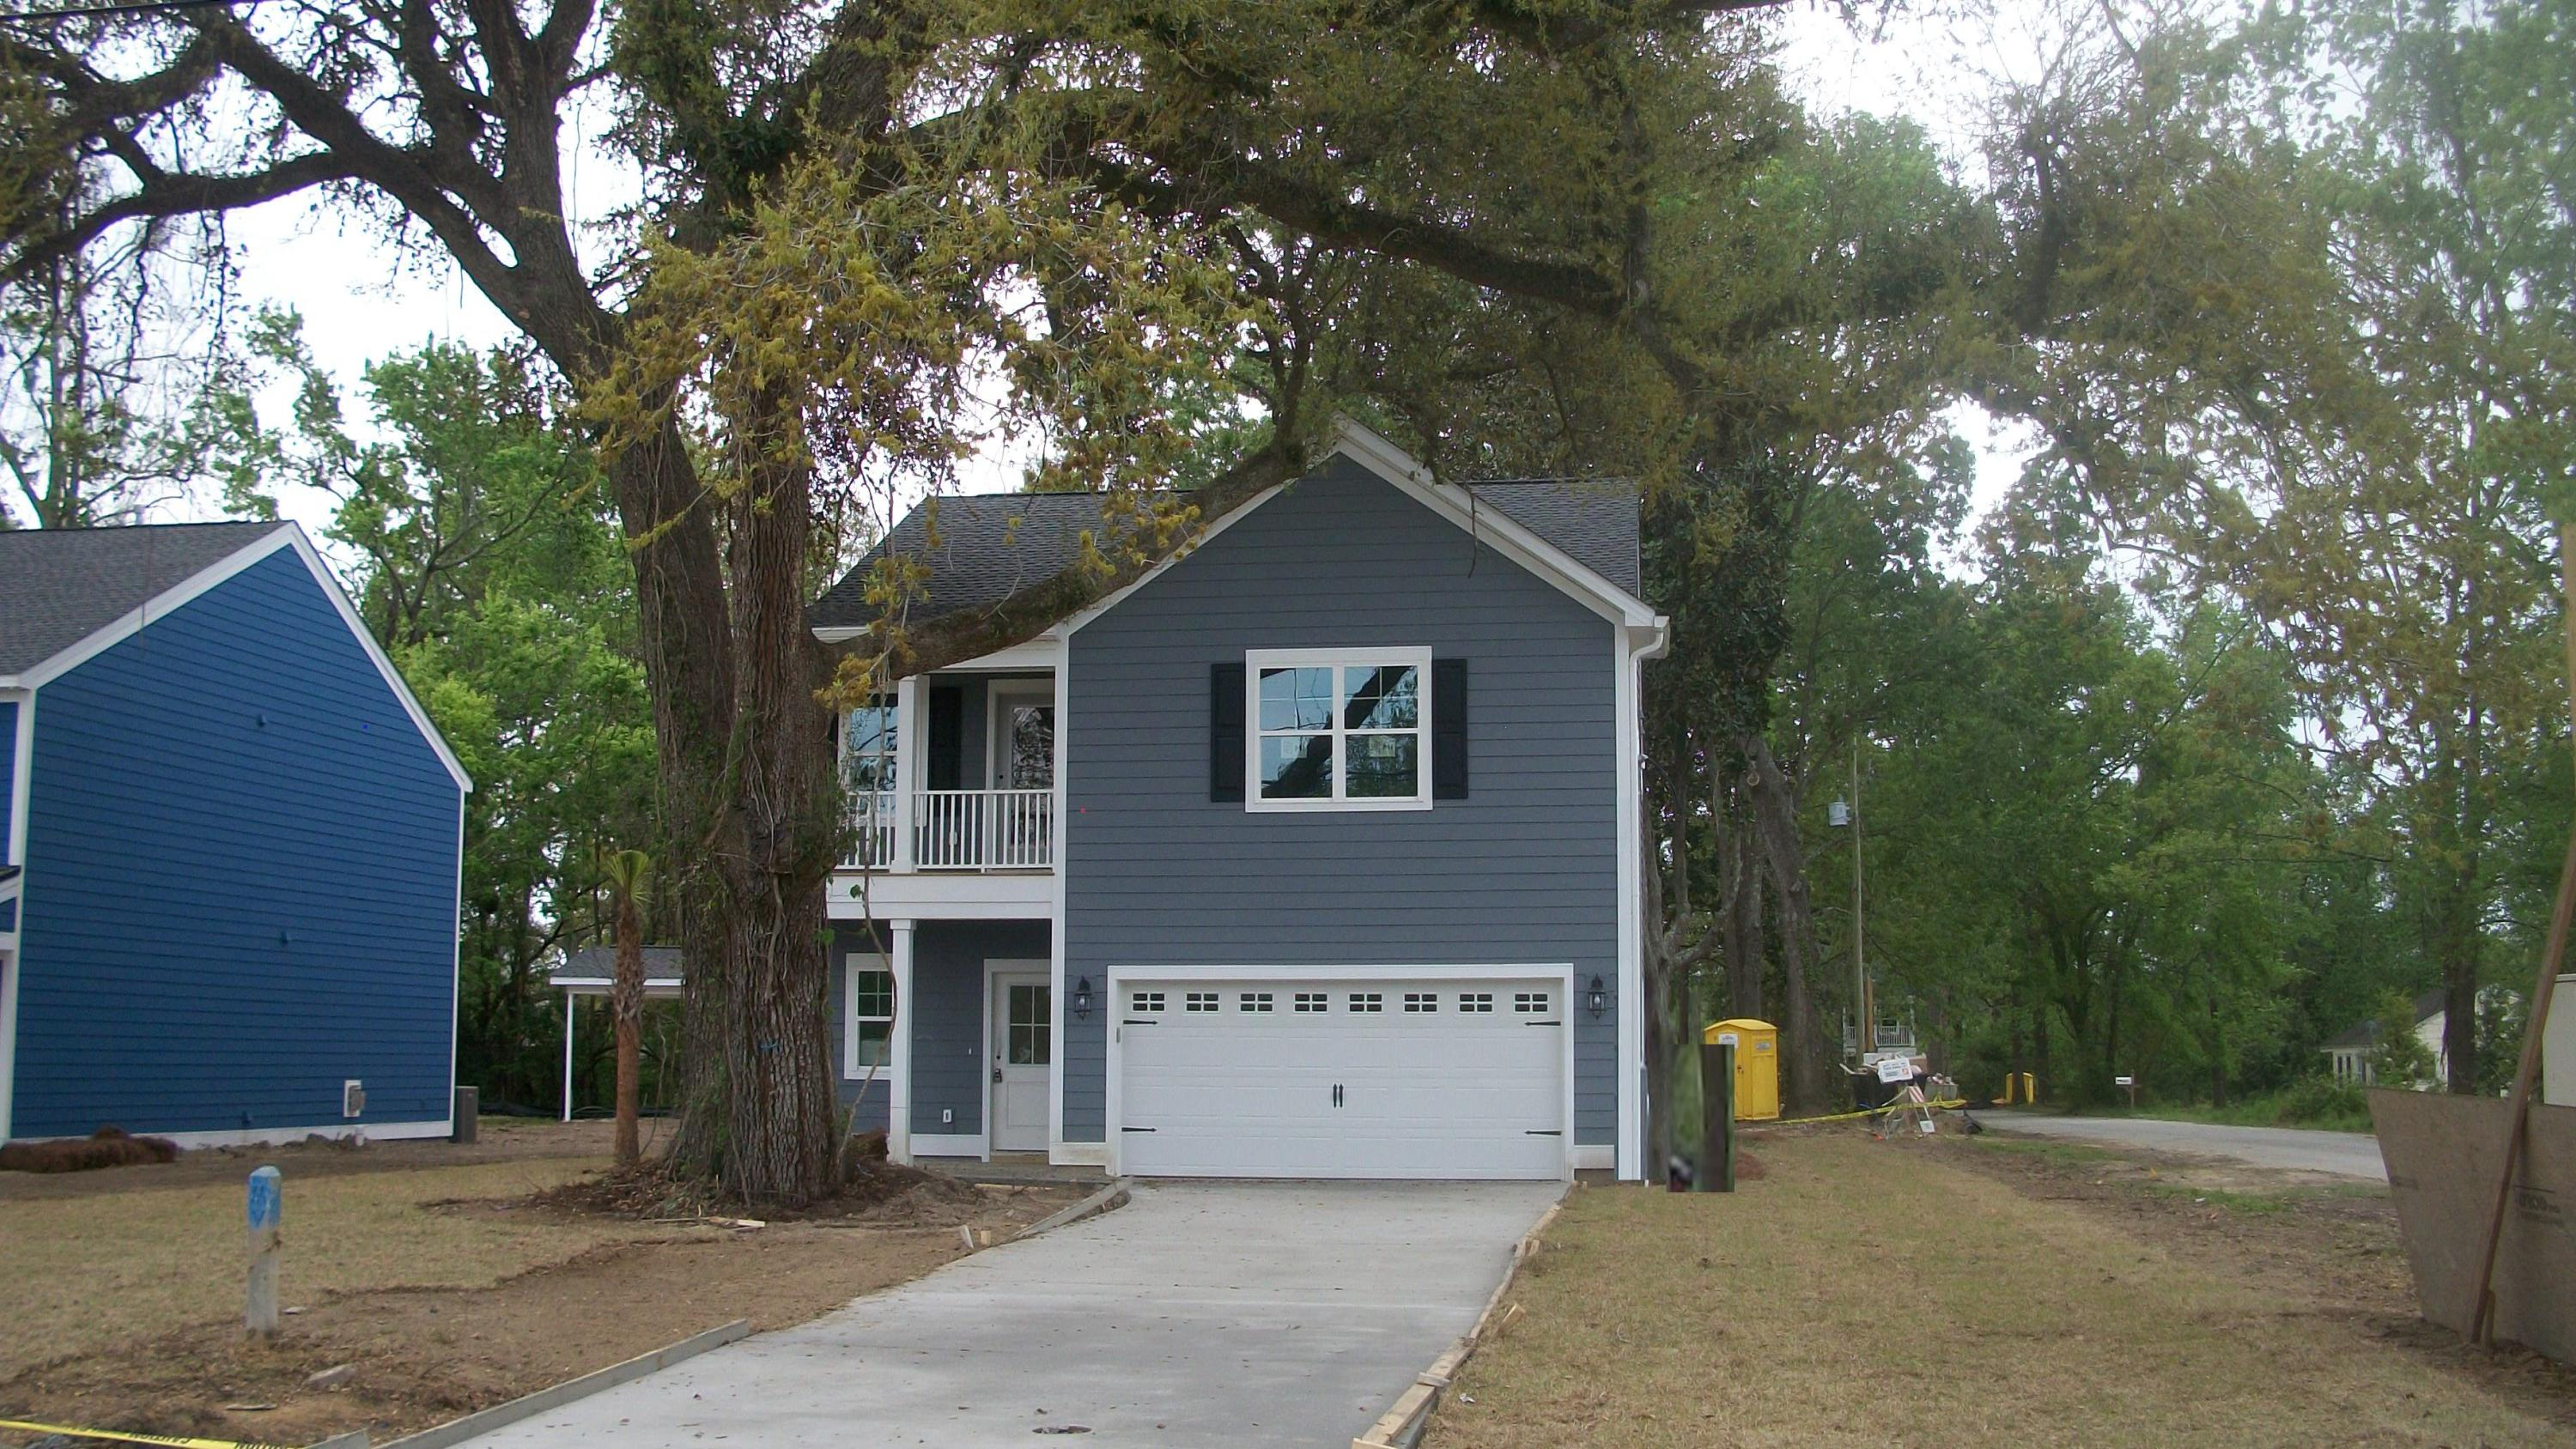 Photo of 1177 Sumner Ave, North Charleston, SC 29406